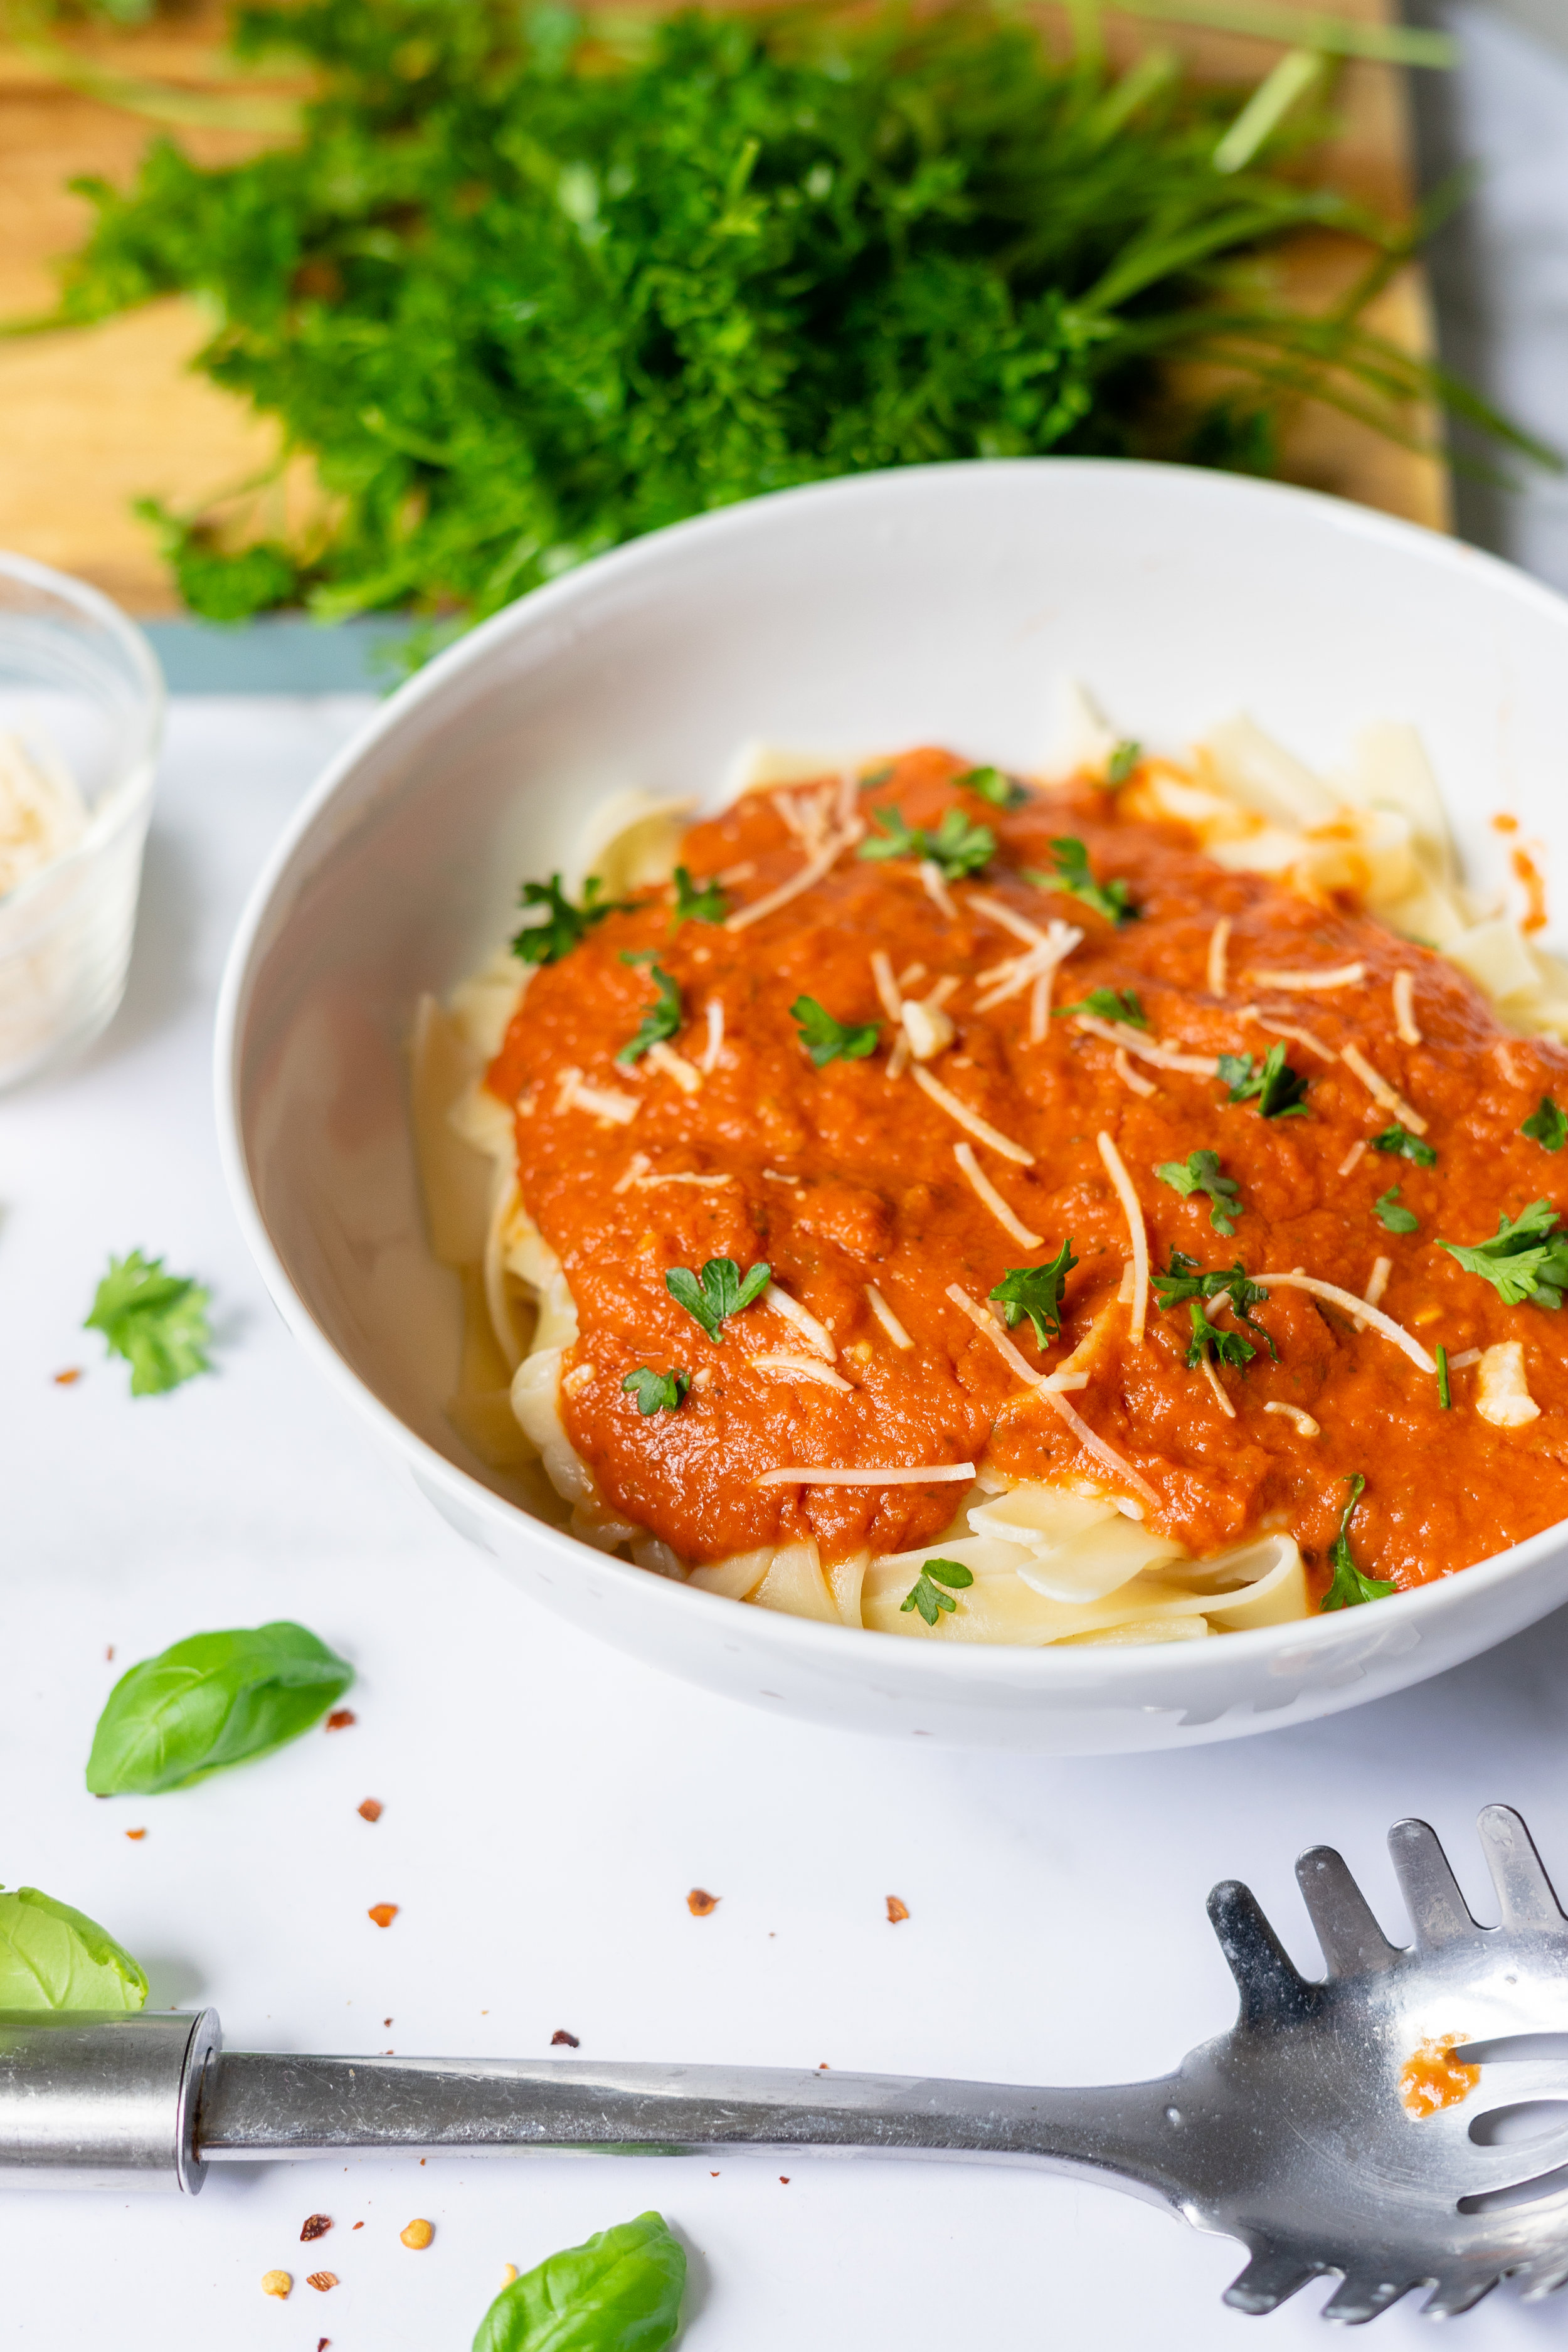 easy pasta sauce, easy pasta sauce recipe, pasta sauce, pasta sauce recipe, vegan pasta recipes, how to make your own pasta sauce, make your own pasta sauce, make your pasta sauce at home, arrabbiata sauce recipe, what is arrabbiata, what is arrabbiata pasta sauce, how to make arrabbiata pasta sauce, what makes arrabbiata pasta sauce spicy, i am rorie, i am rorie arrabbiata pasta sauce, i am rorie food blog, chicago food blogger, vegan food blogger, chicago vegan food blogger, home made pasta sauce, home made arrabbiata sauce, simple arrabbiata sauce, garlic, canned crushed tomatoes, olive oil, red pepper flakes, what can you make with a can of tomatoes, what can you make with a can of crushed tomatoes, easy recipes using things that are already in your pantry, what can i make with a can of tomatoes